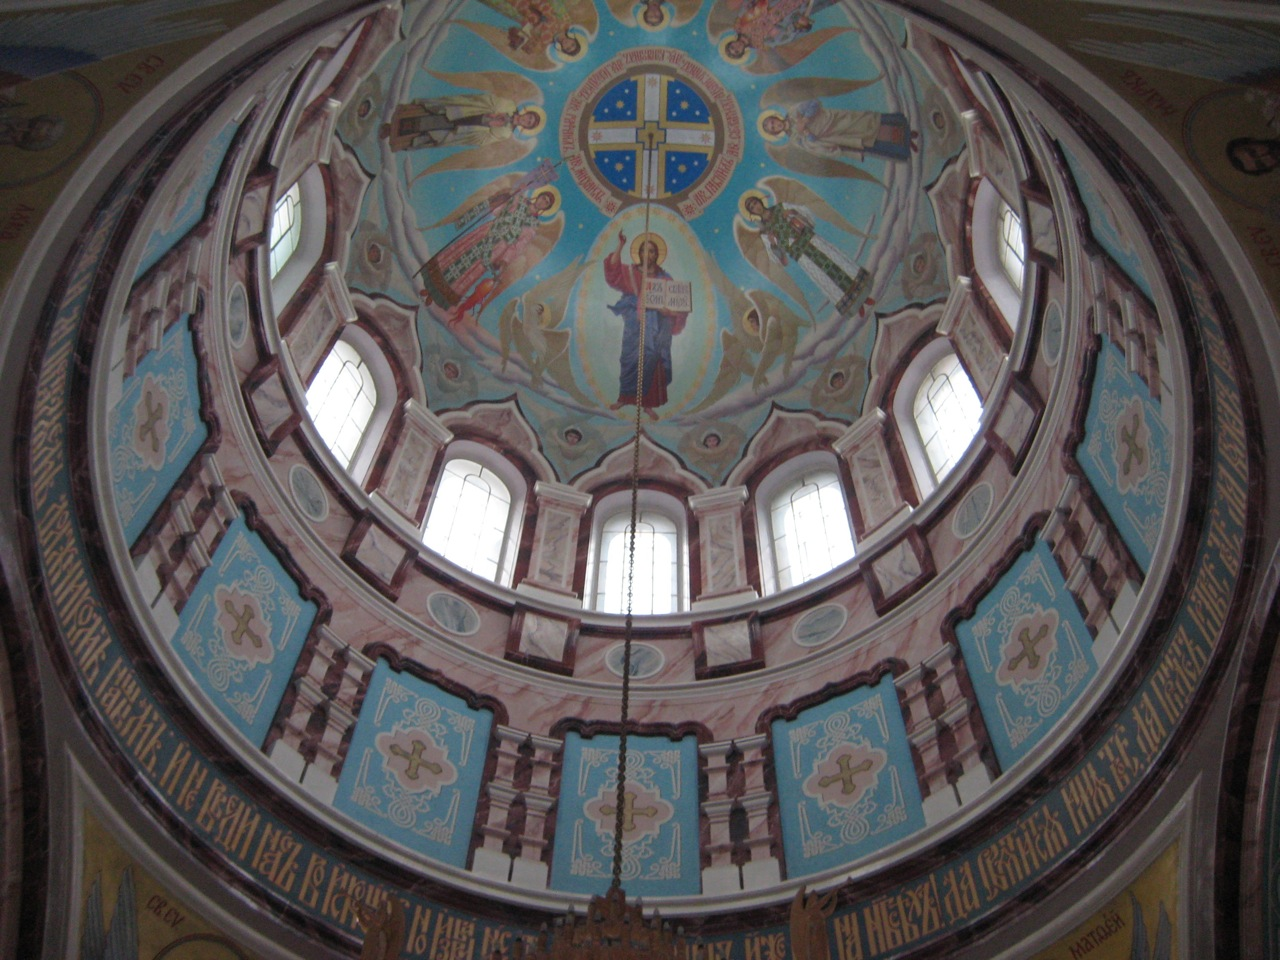 inside-the-dome-of-the-john-the-baptist-cathedral